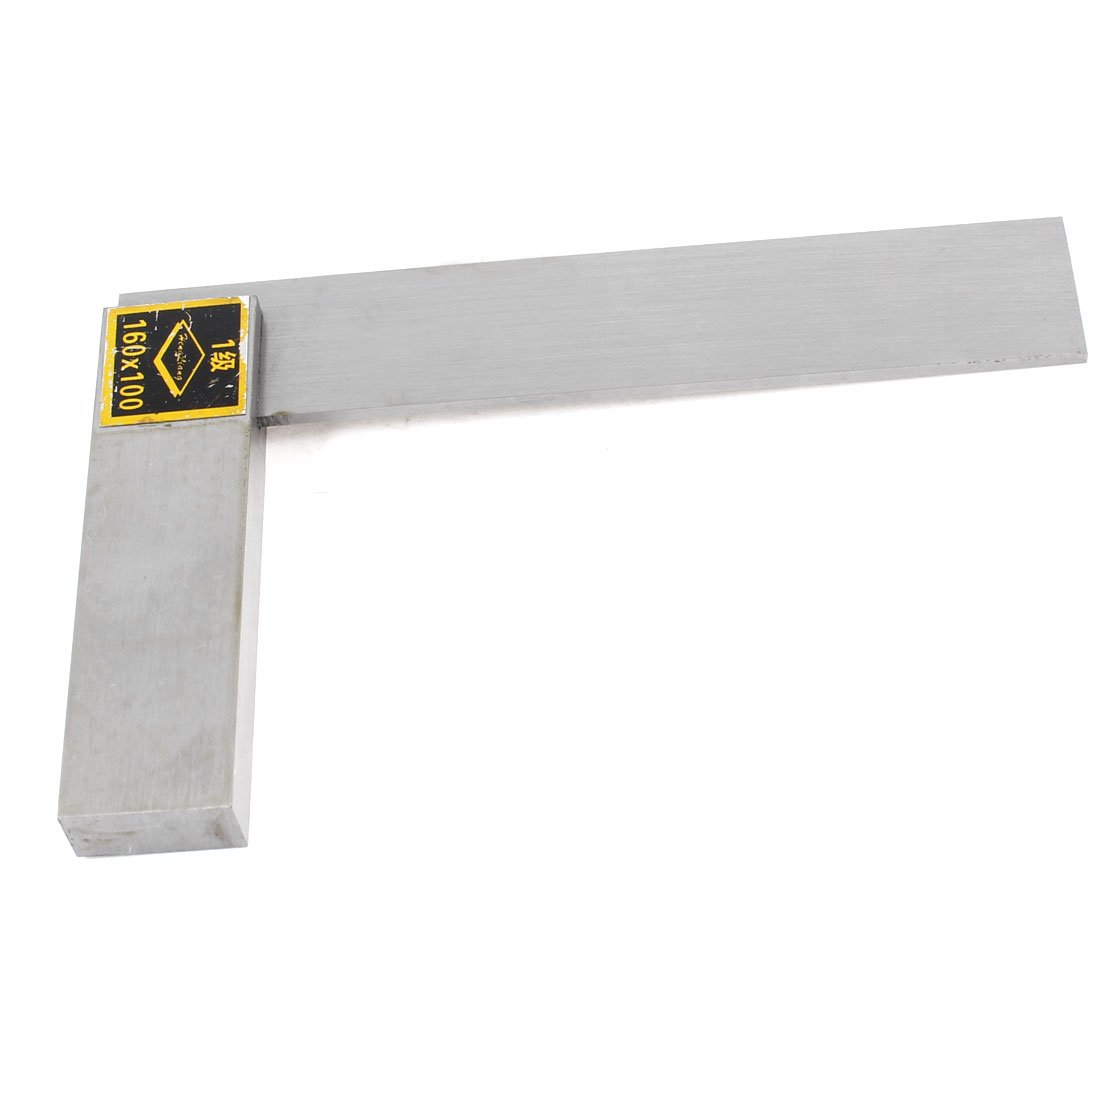 uxcell Woodwork Measurement Angle Ruler Beveled Edge Square 160mm x 100mm Scale